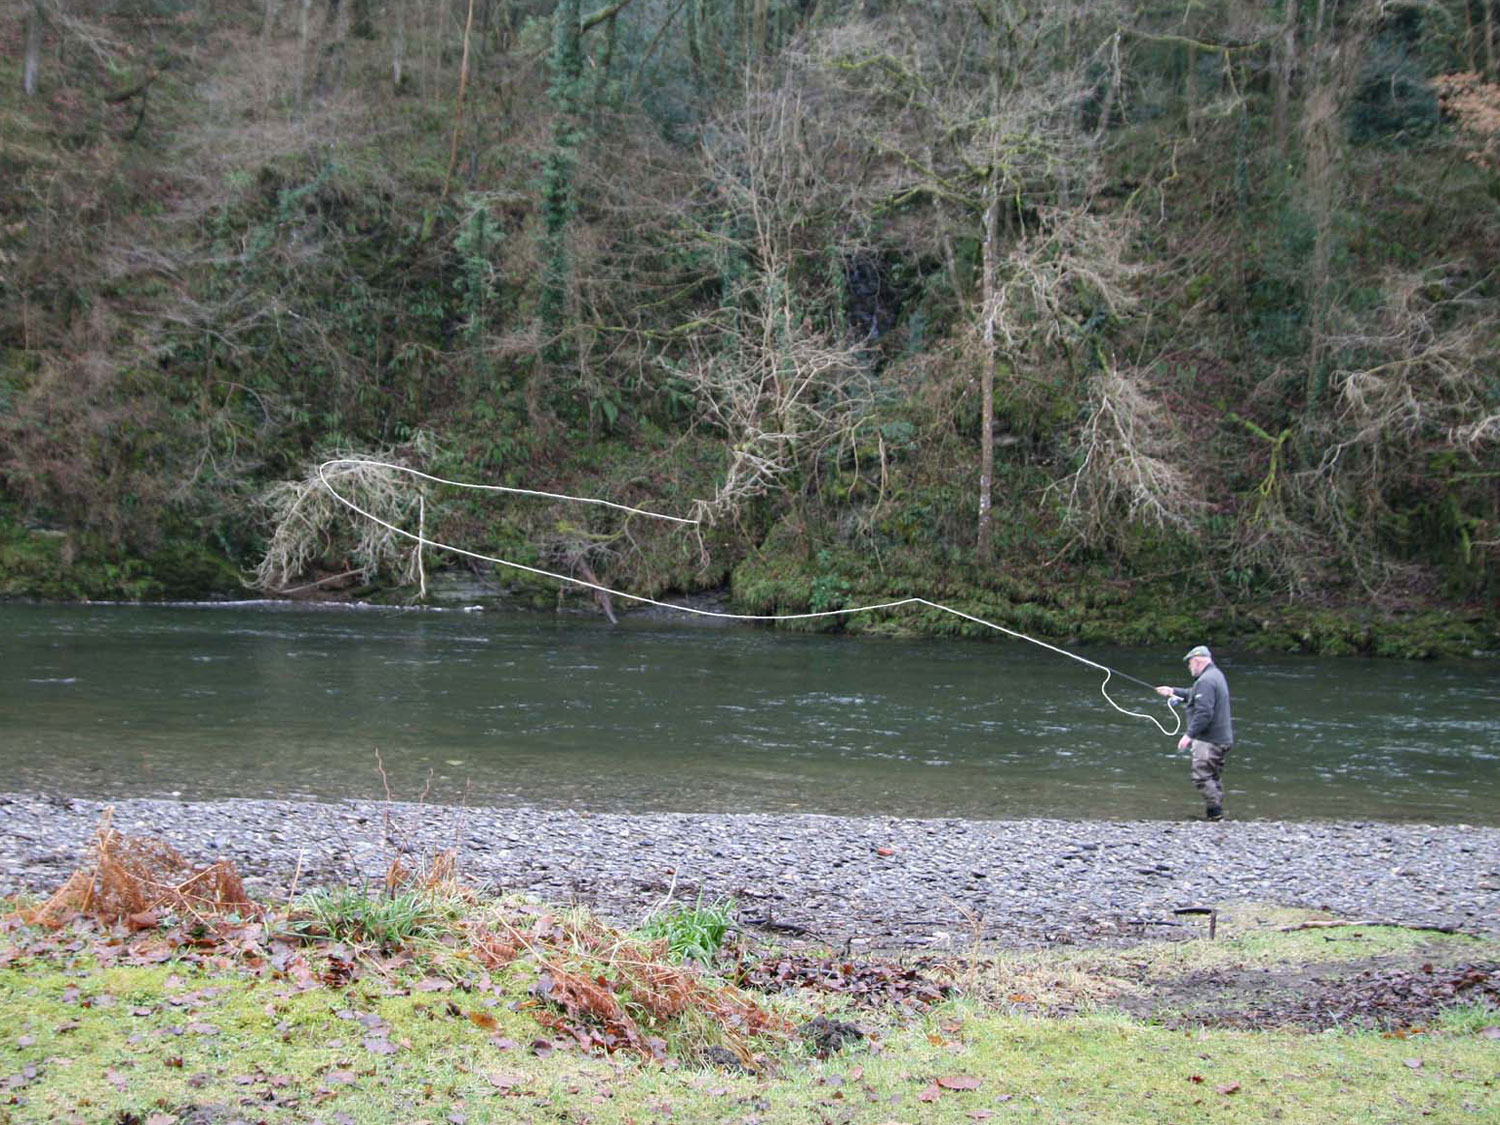 Illtyd Griffiths casting a fly